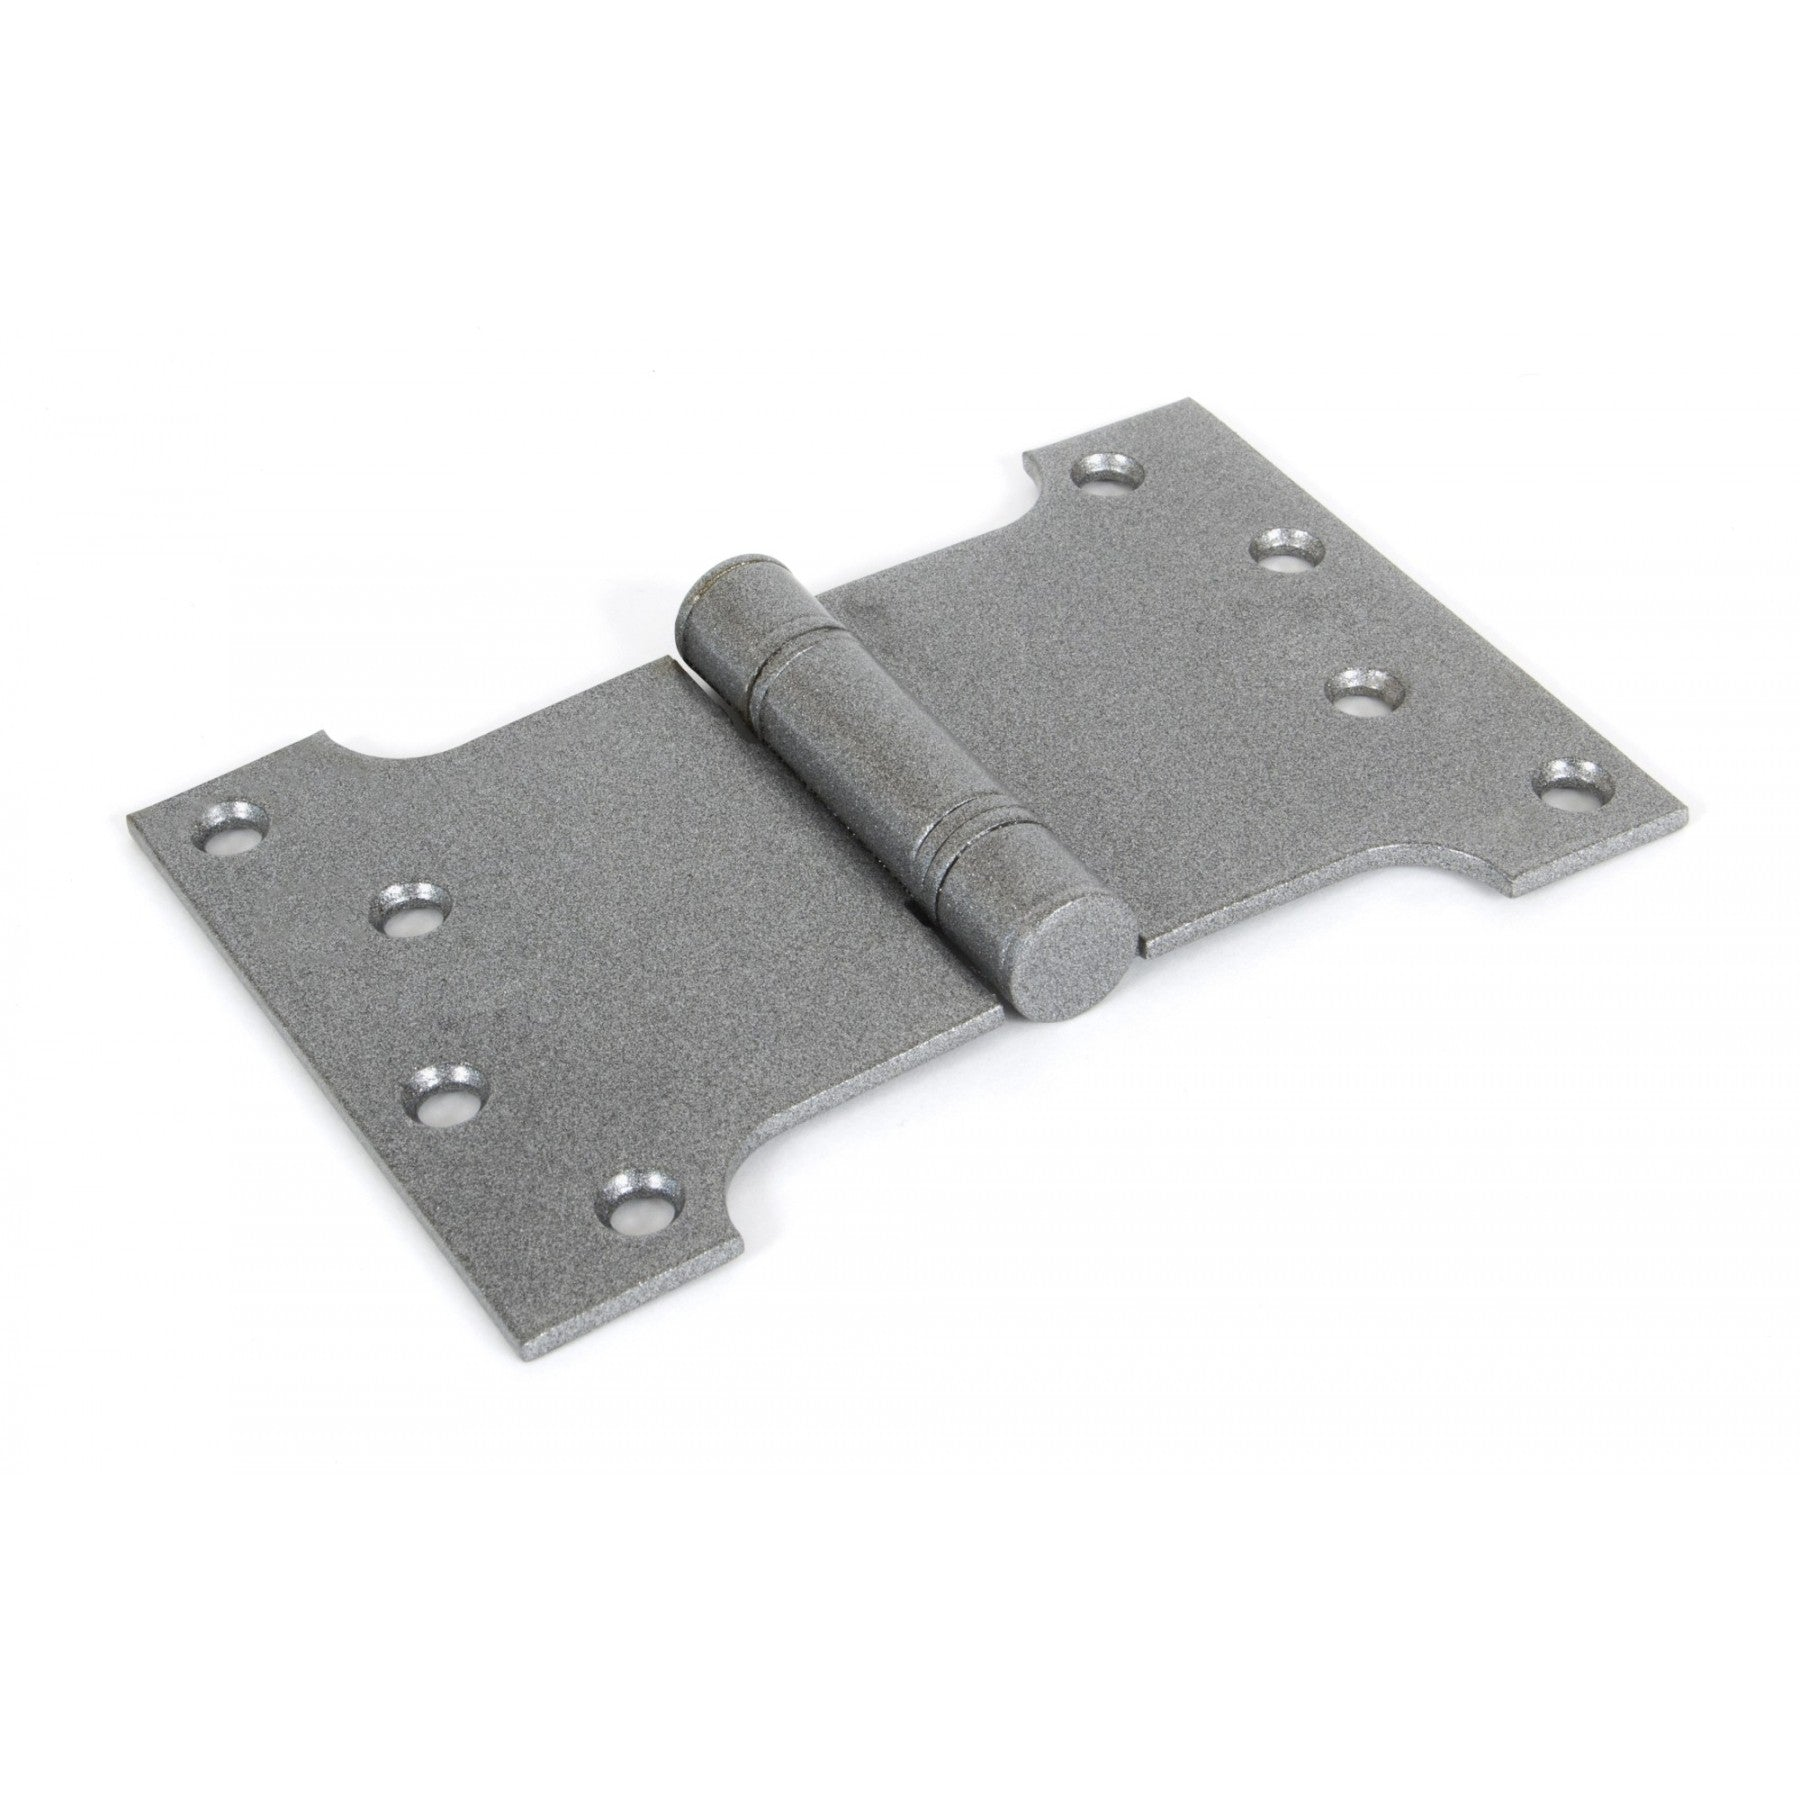 "Pewter 4'' x 4"" x 6"" Ball Bearing Parliament Hinge (pair)"